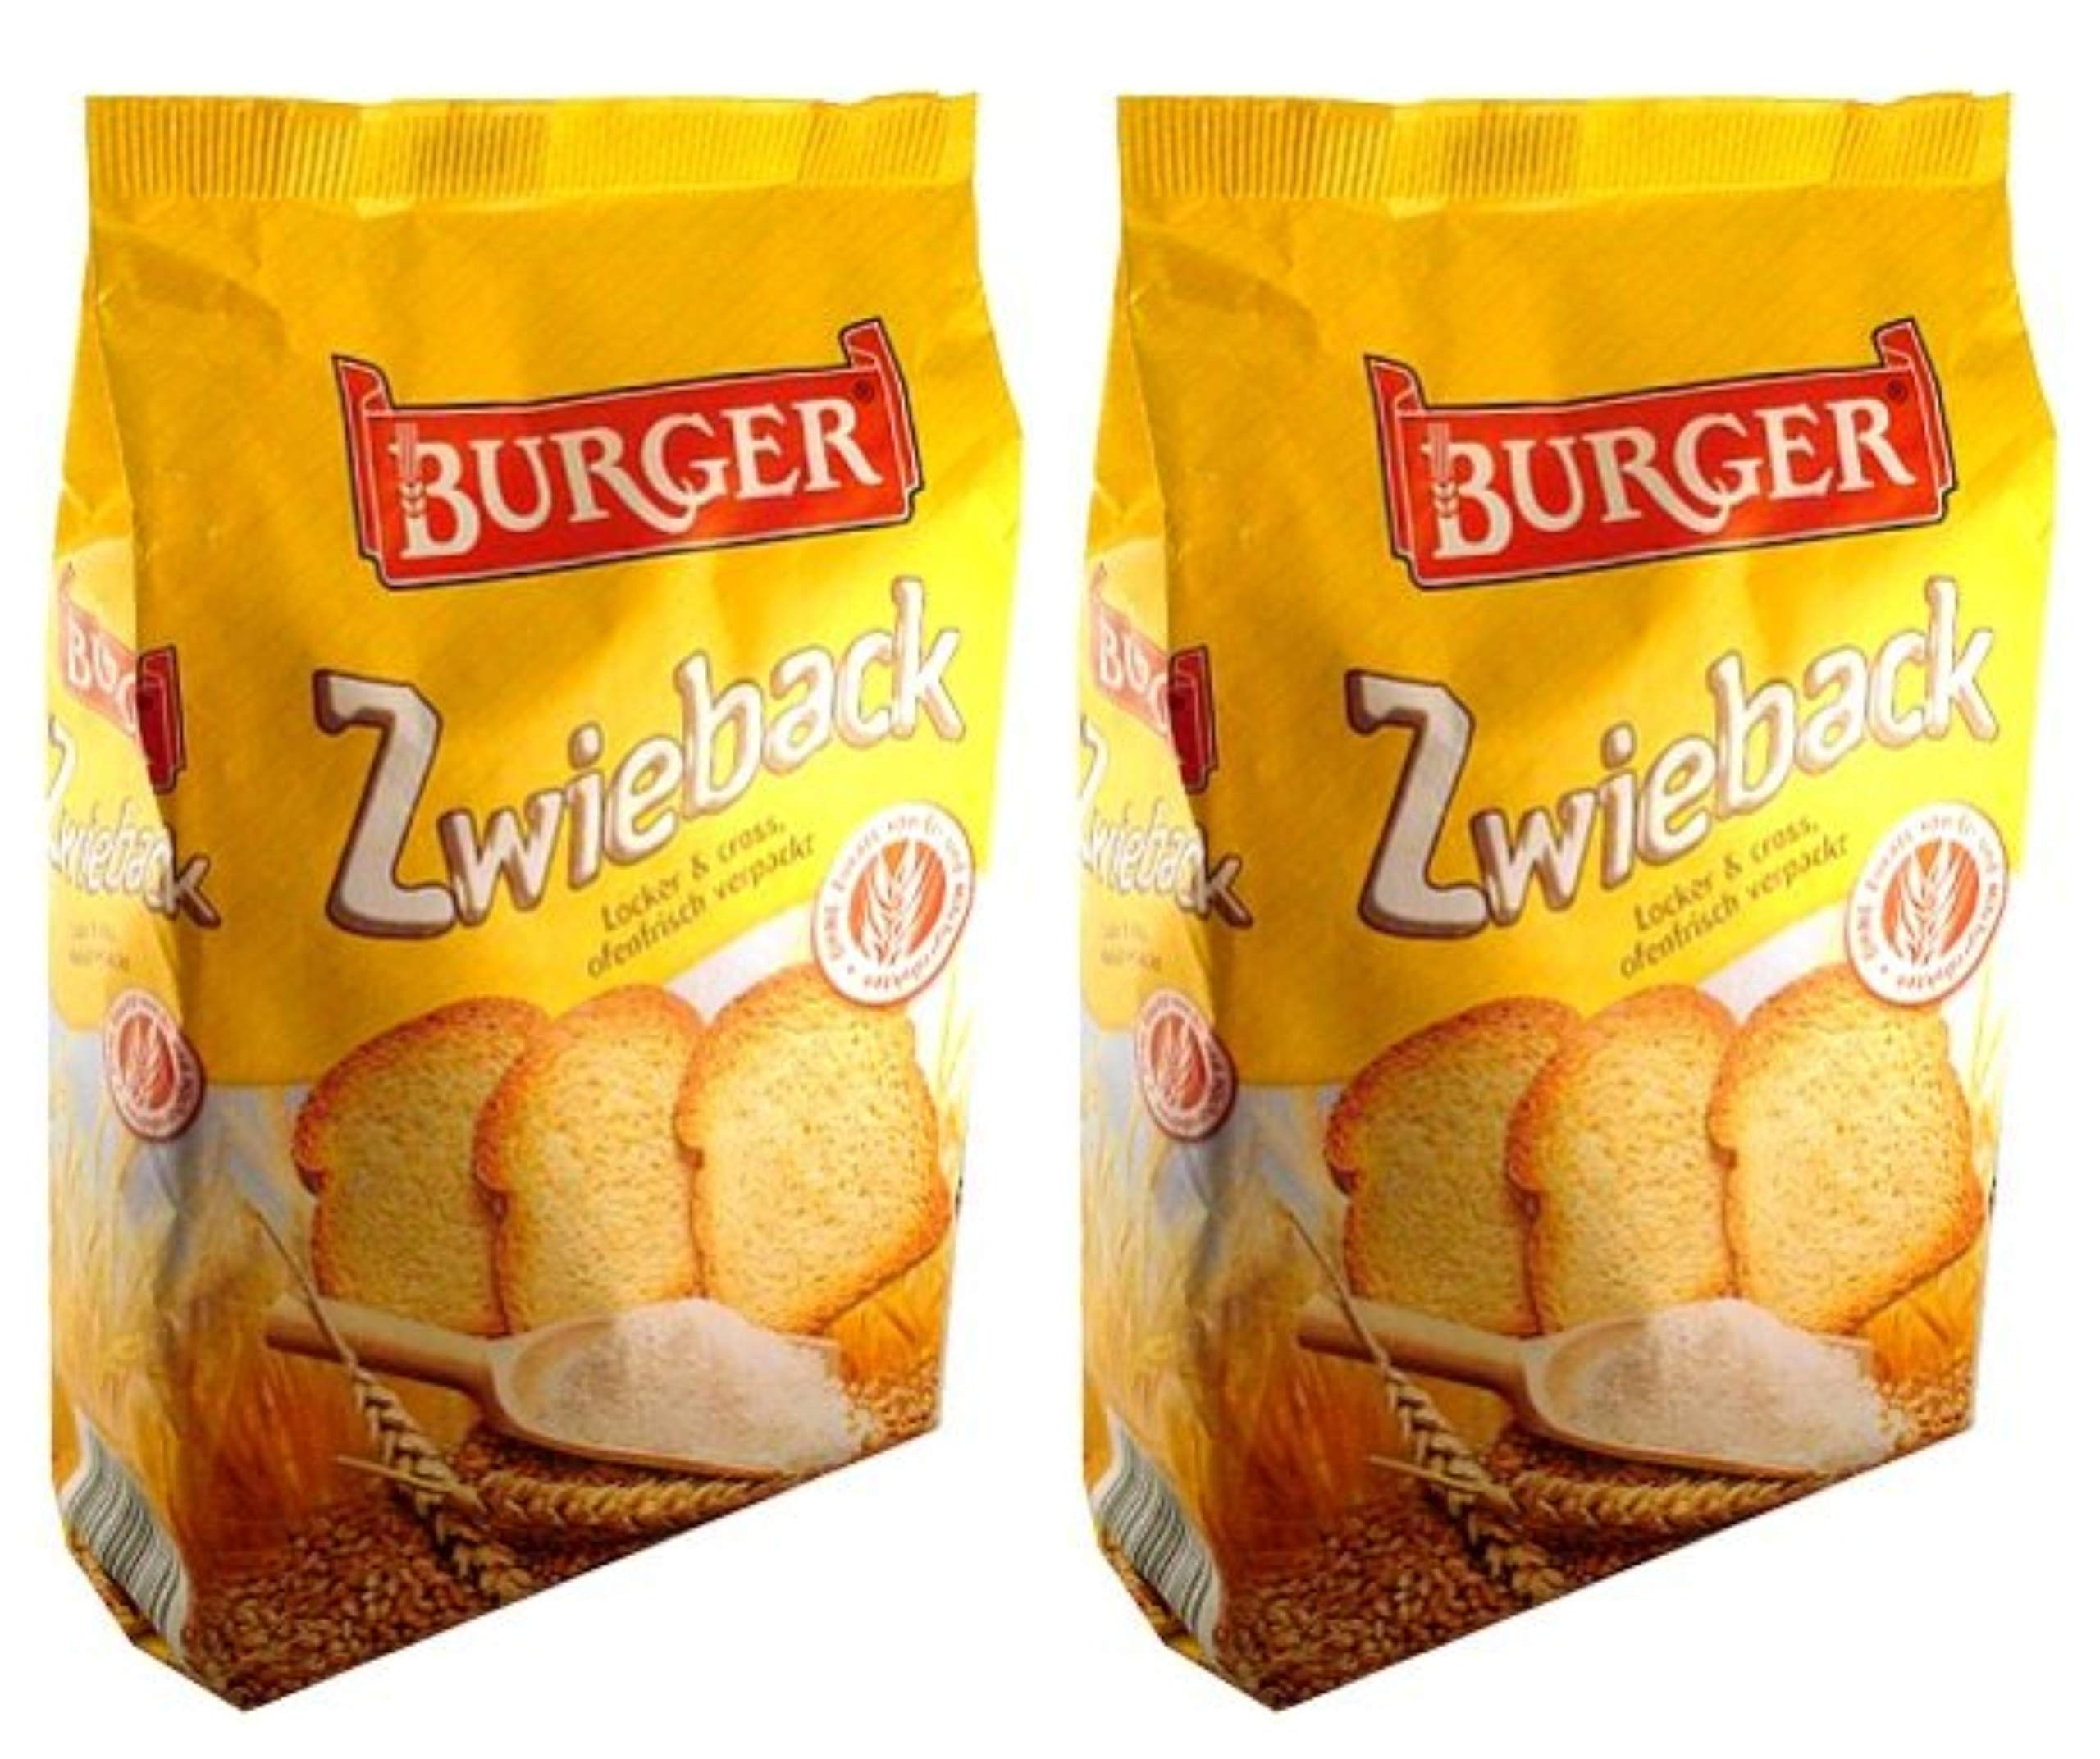 Burger Zwieback Rusk Bread From Germany Pack of 2 by Burger